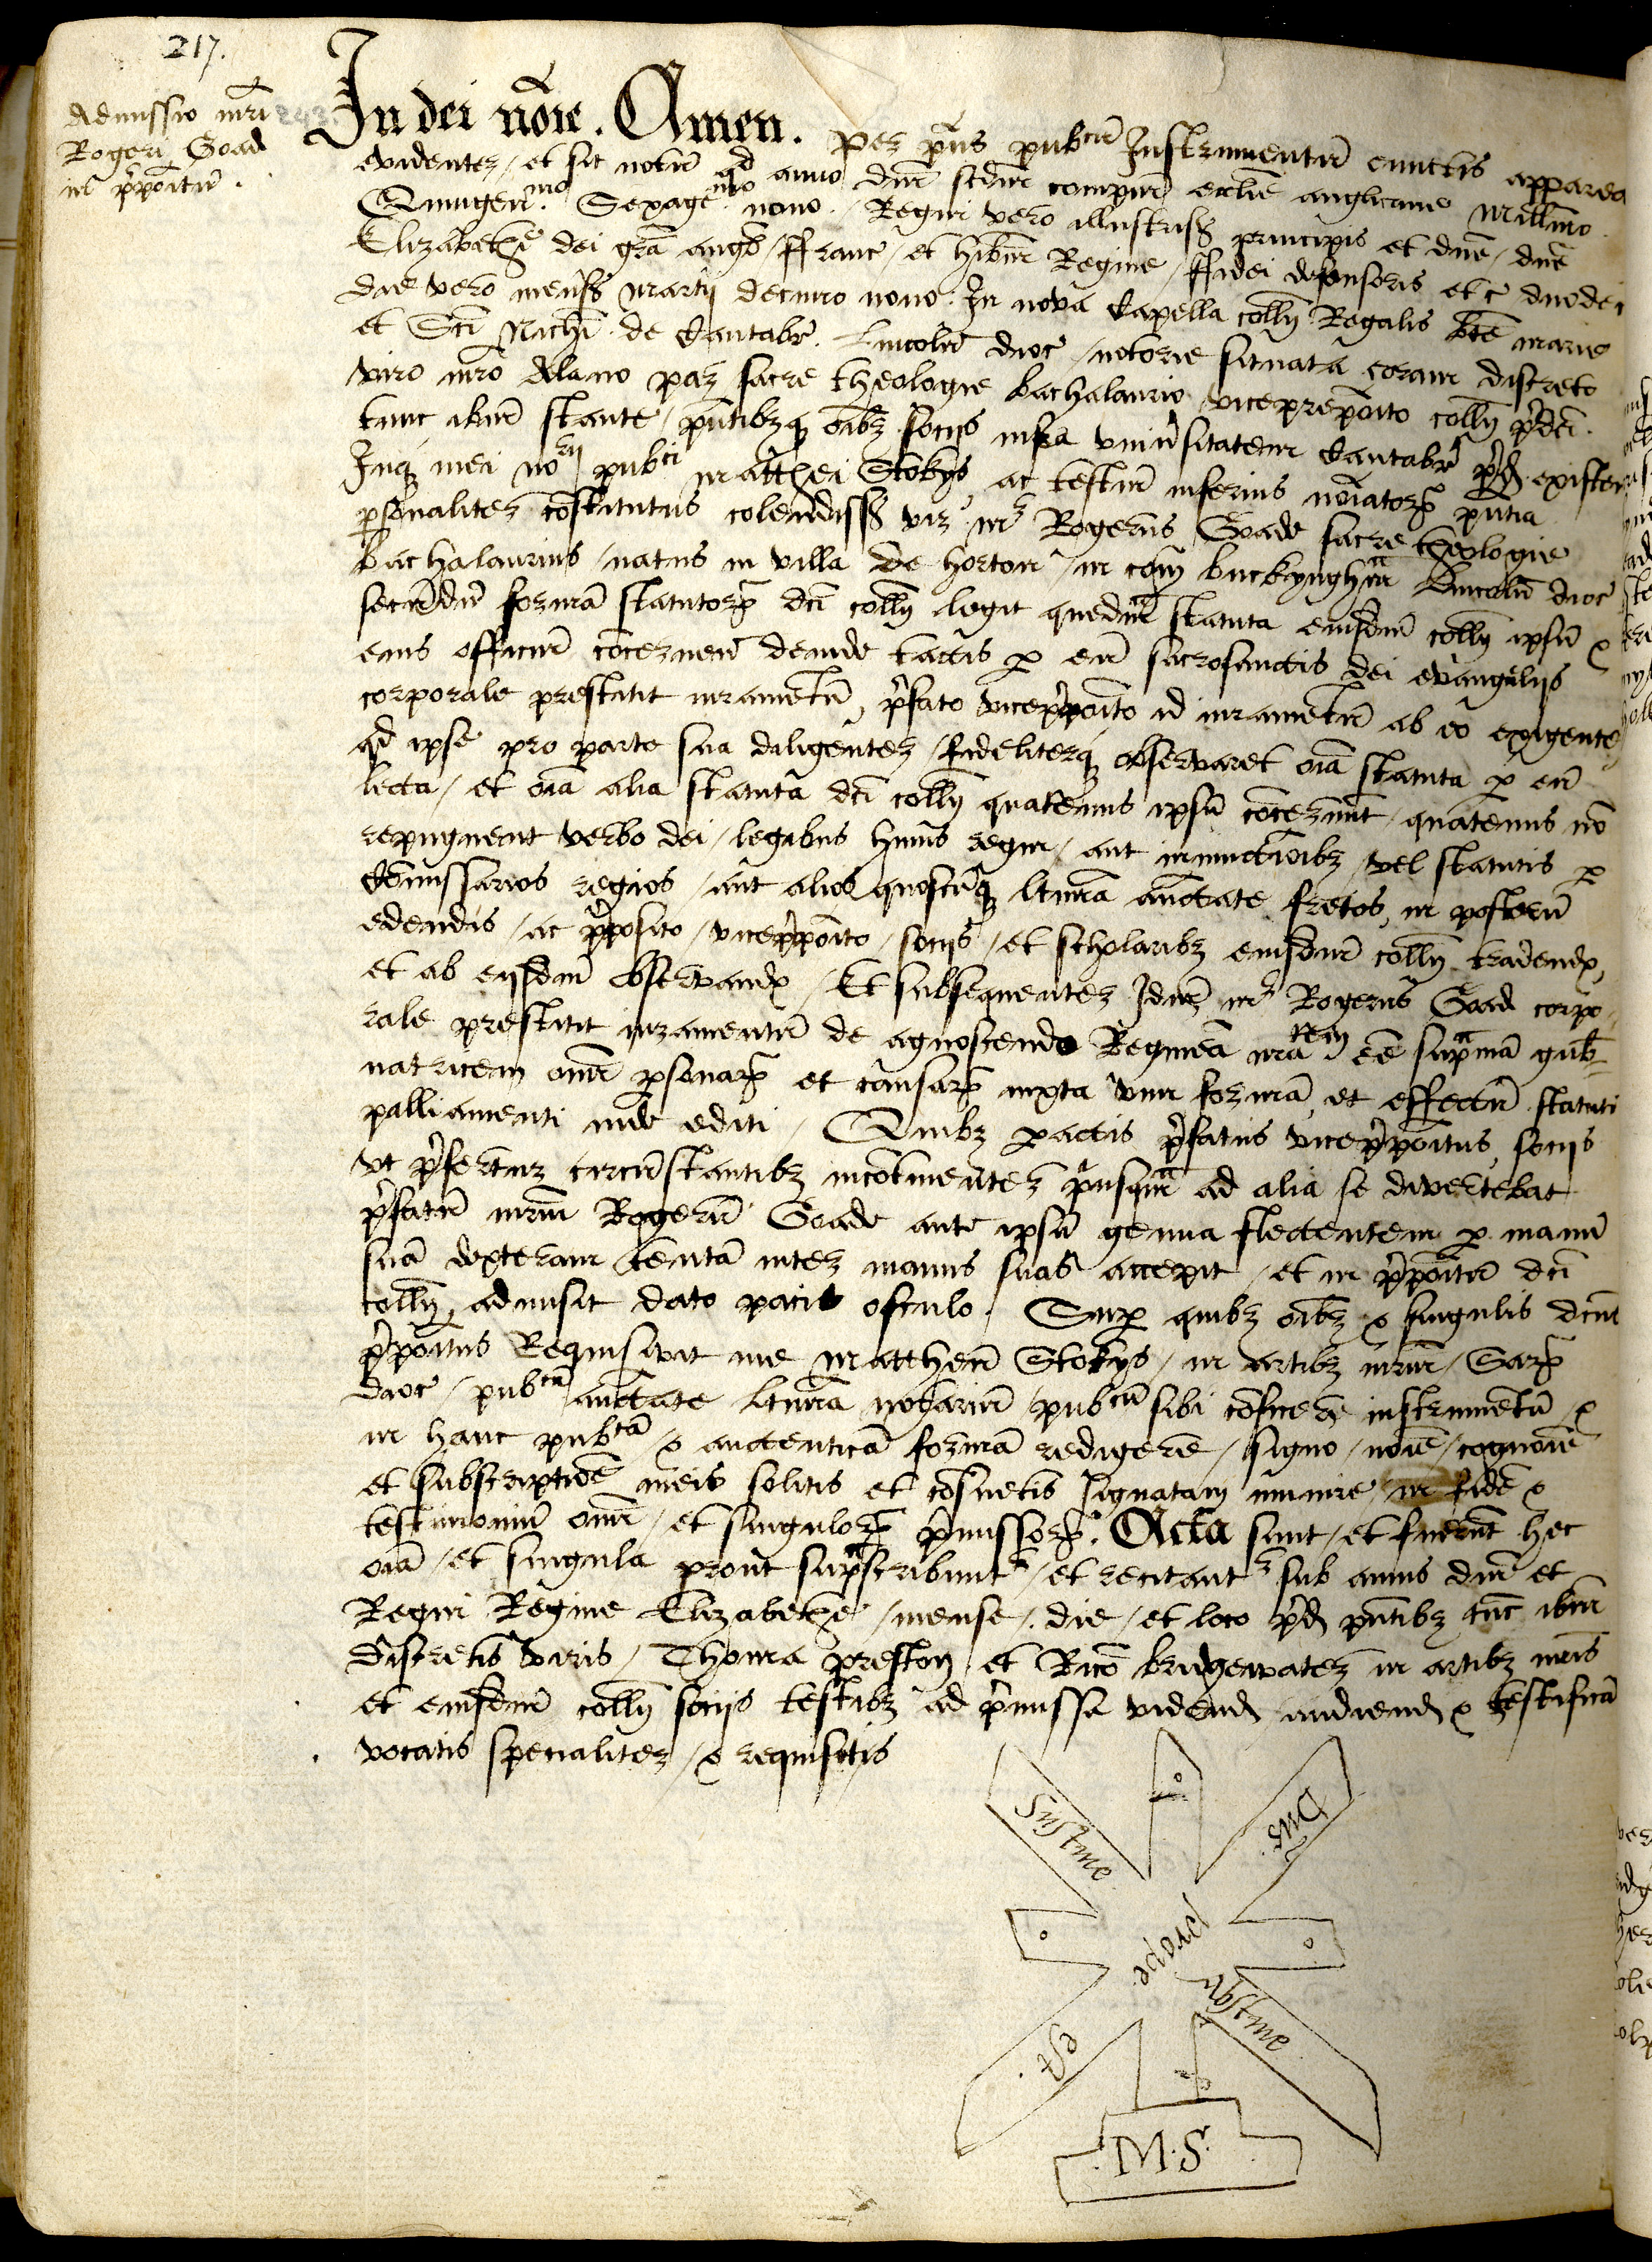 Mark of Matthew Stokes. Notary Public on the admission of Roger Goade to the Provostship in 1570. (KCAC/2/1/1/217)